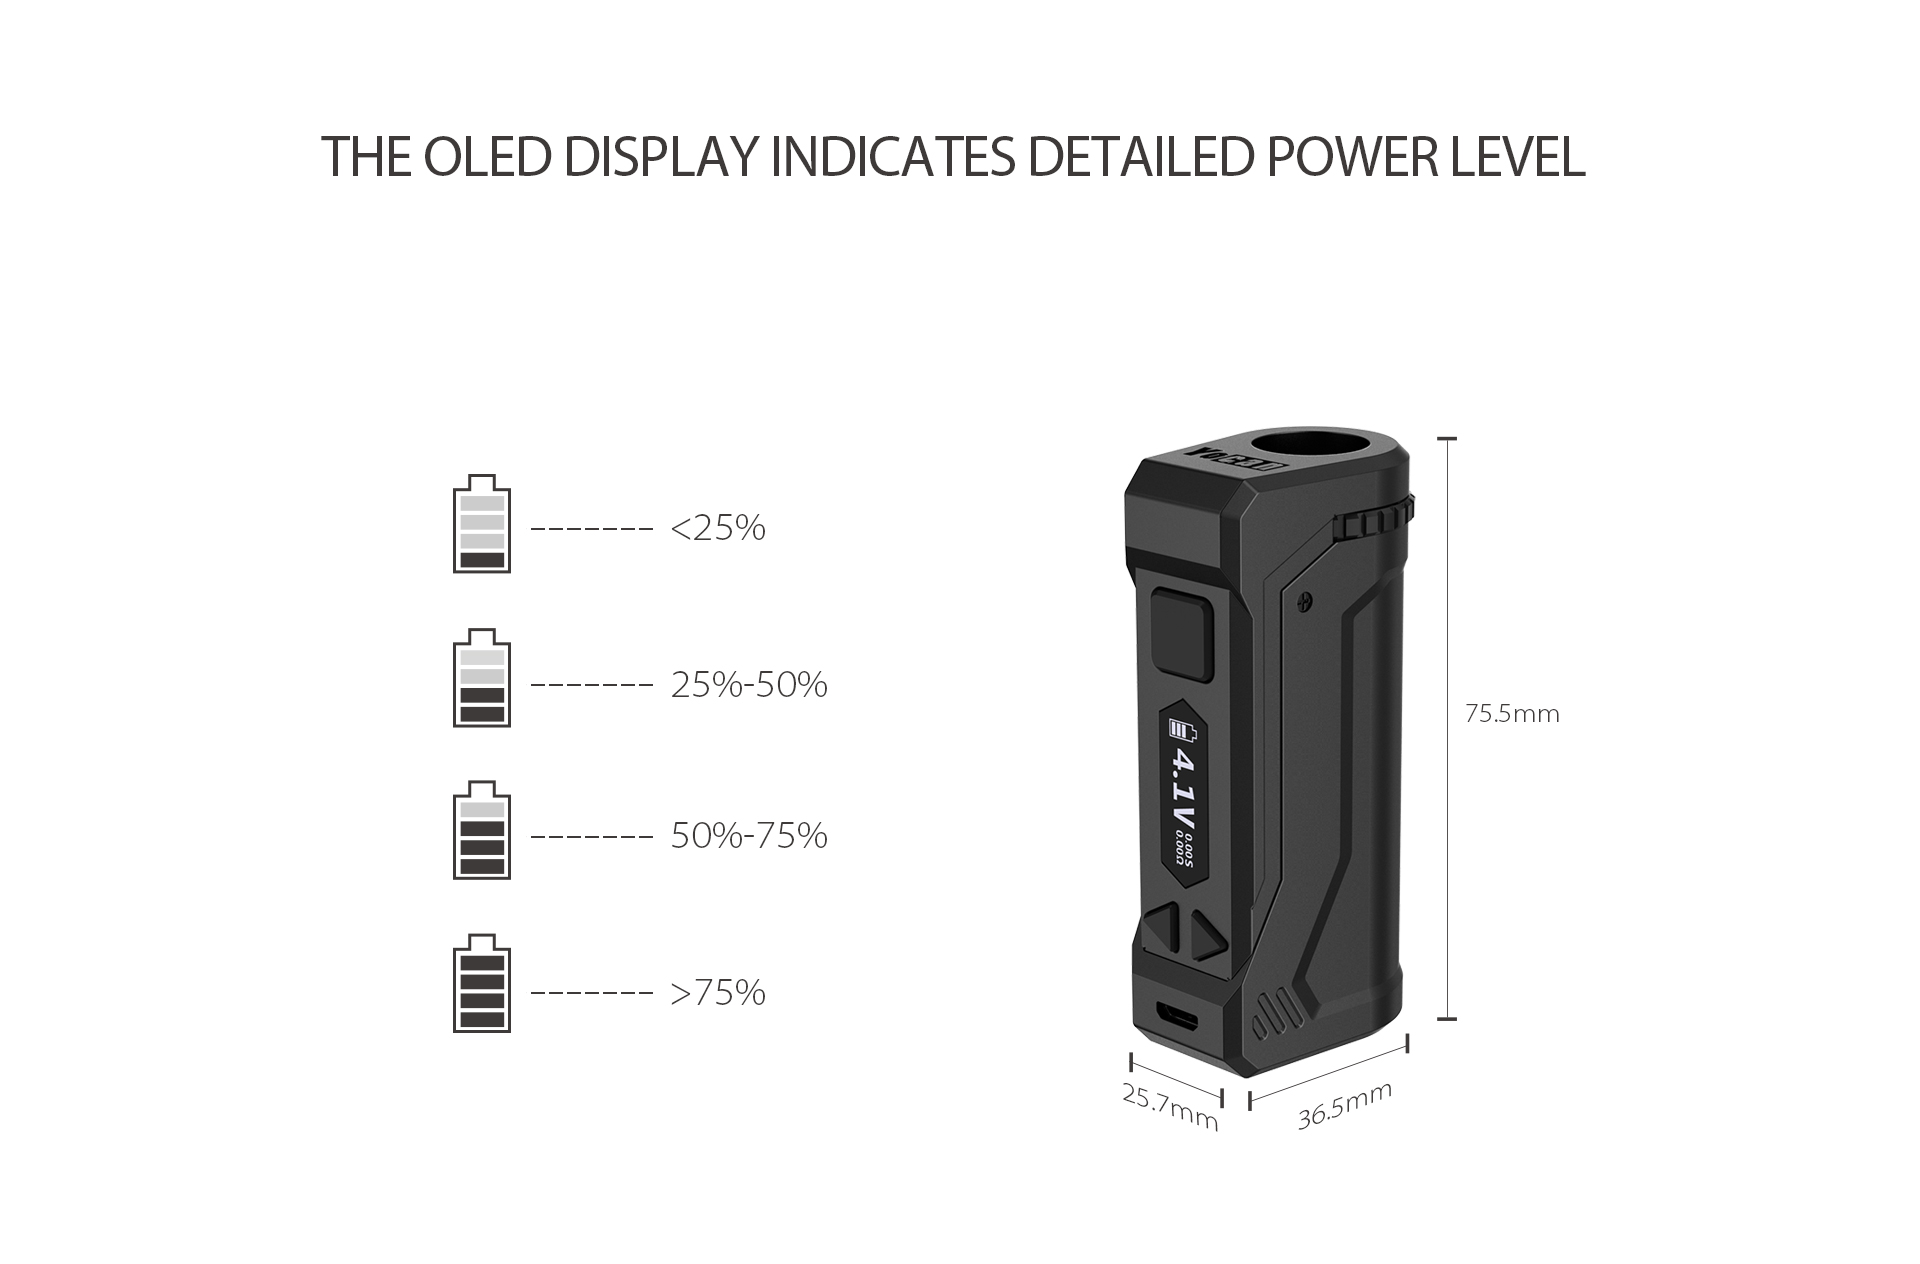 The UNI Pro display detailed power level to let you know the specific battery life and and charging status.